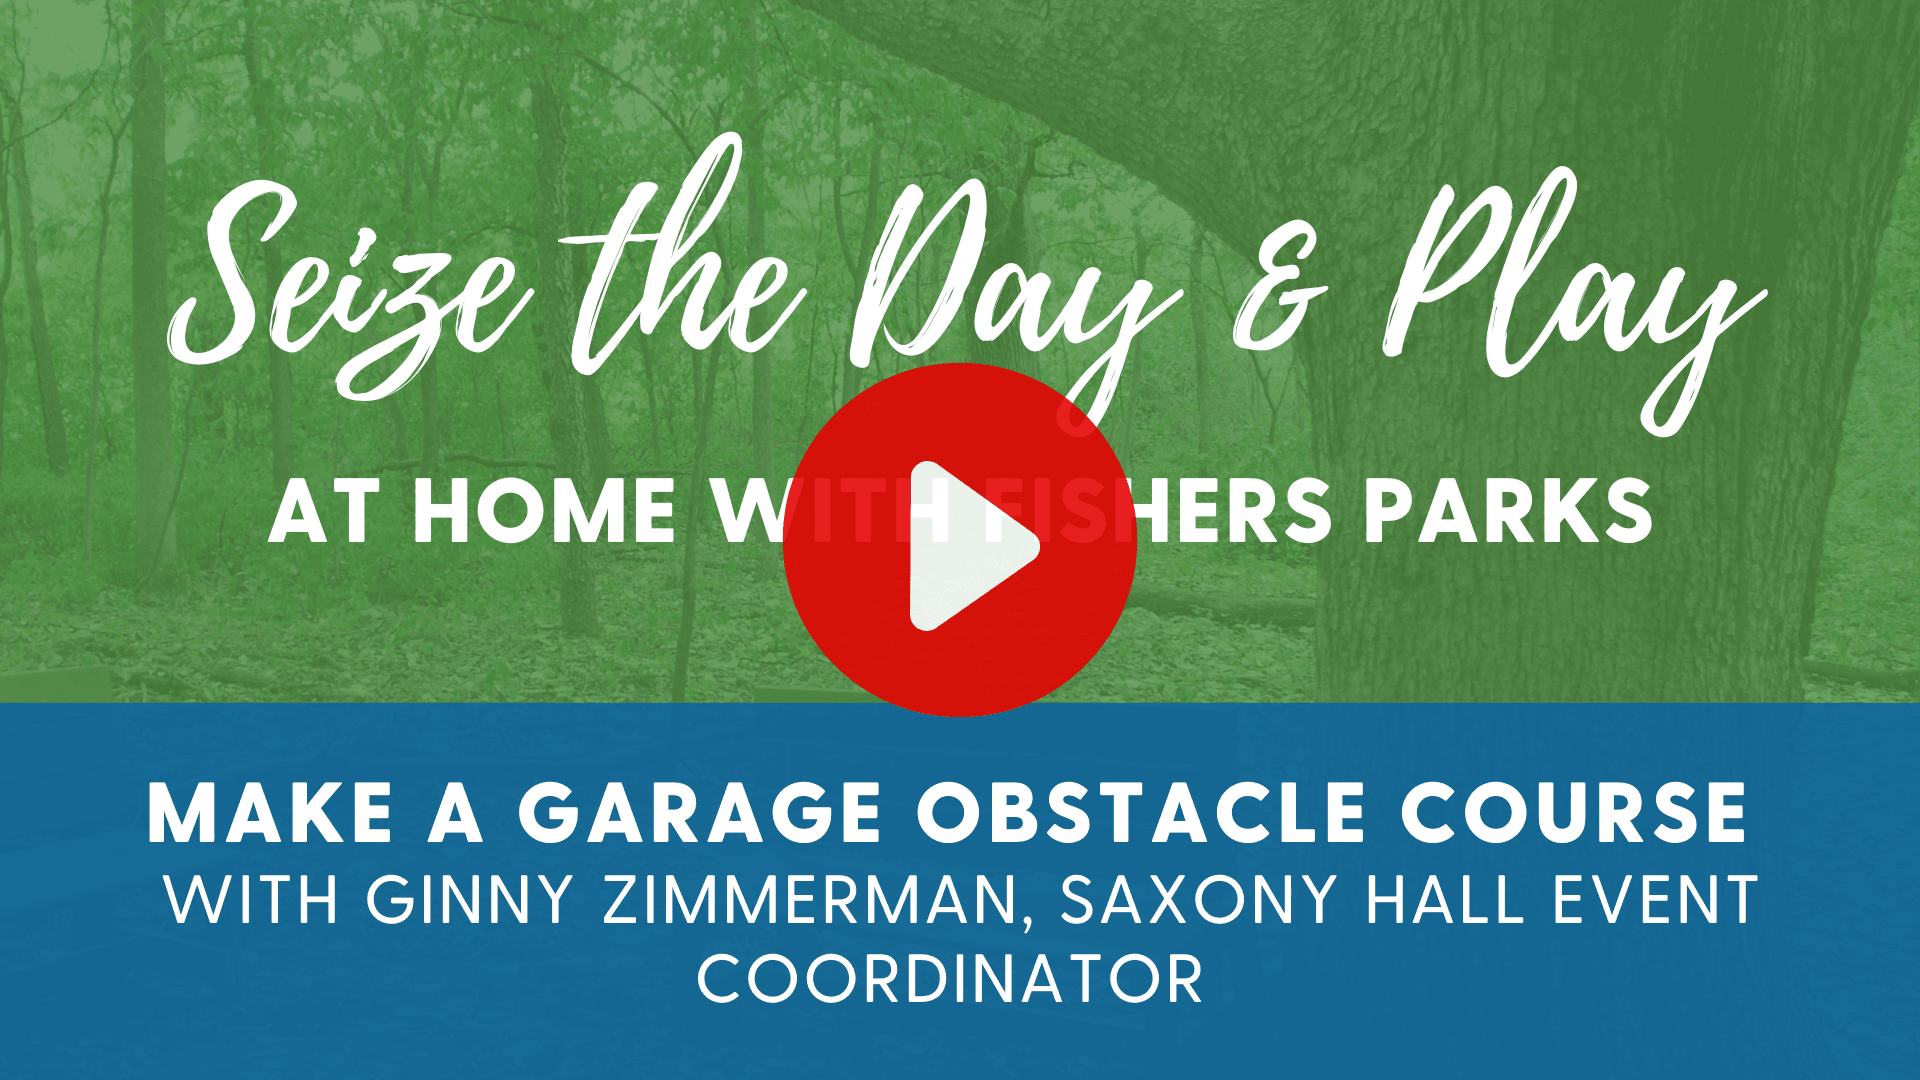 seize the day and play at home with fishers parks make a garage obstacle course with ginny zimmerman Opens in new window